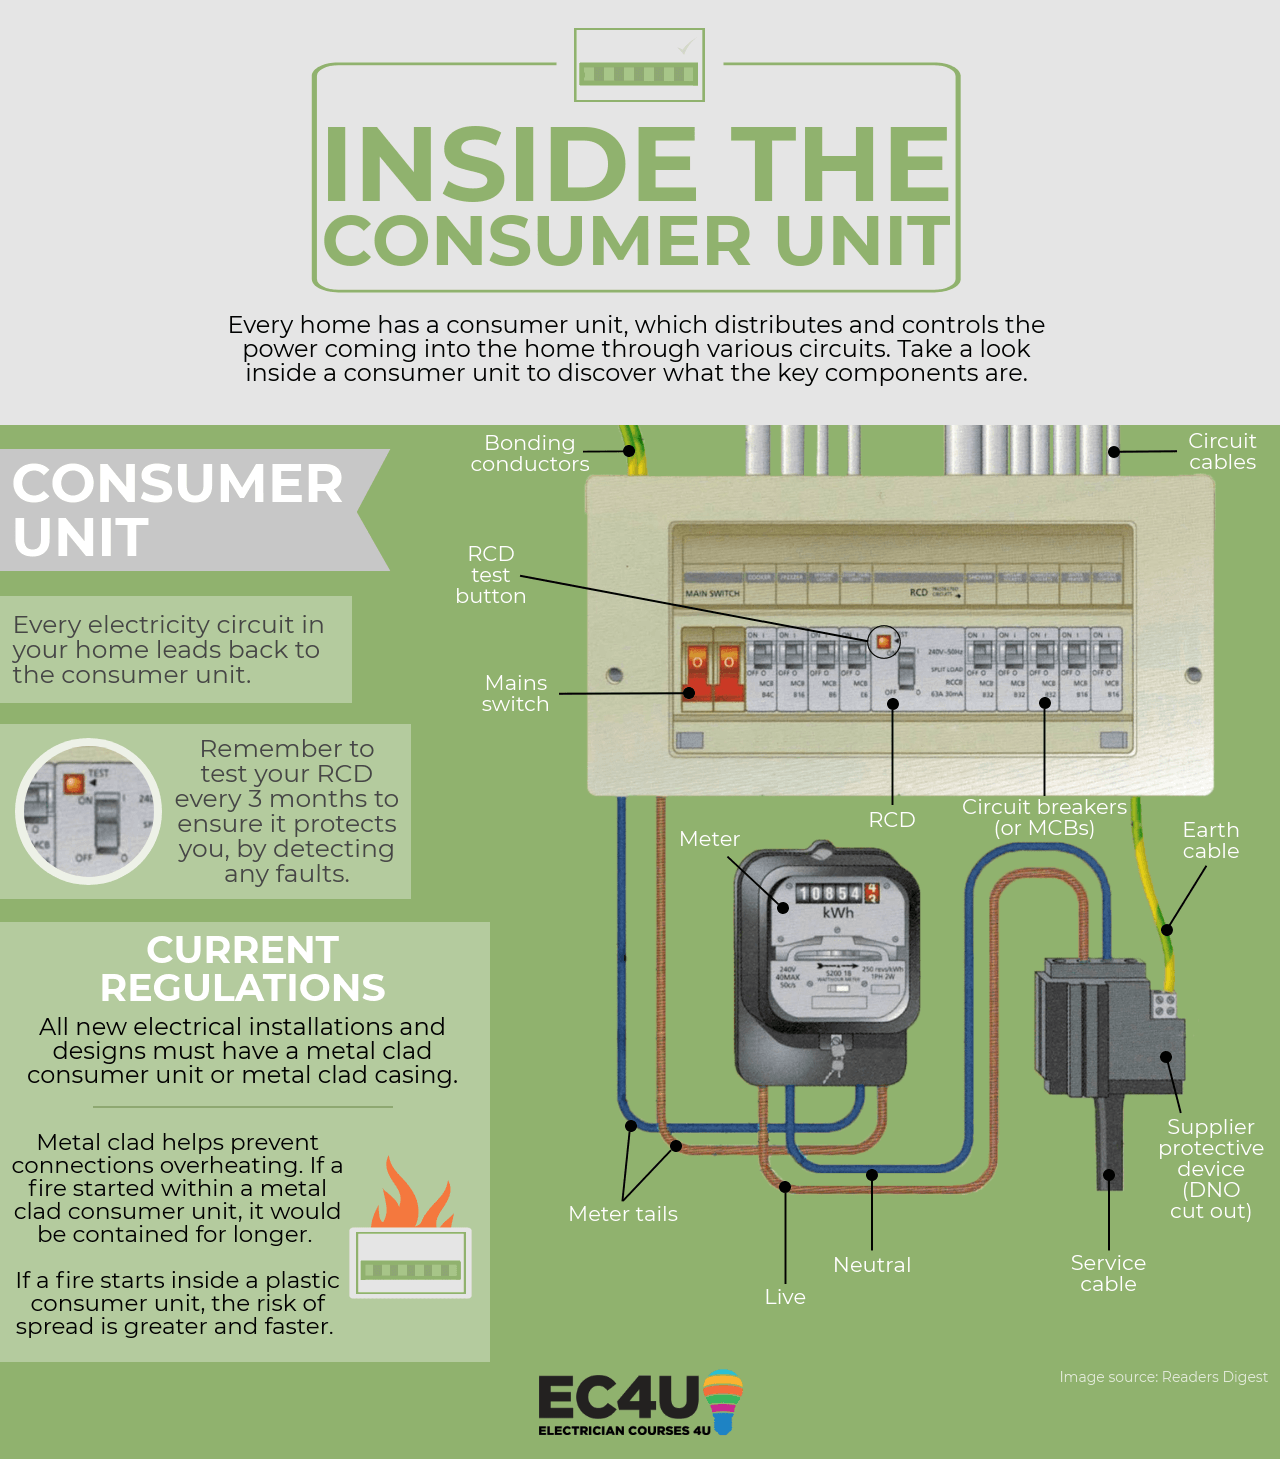 hight resolution of inside the consumer unit infographic